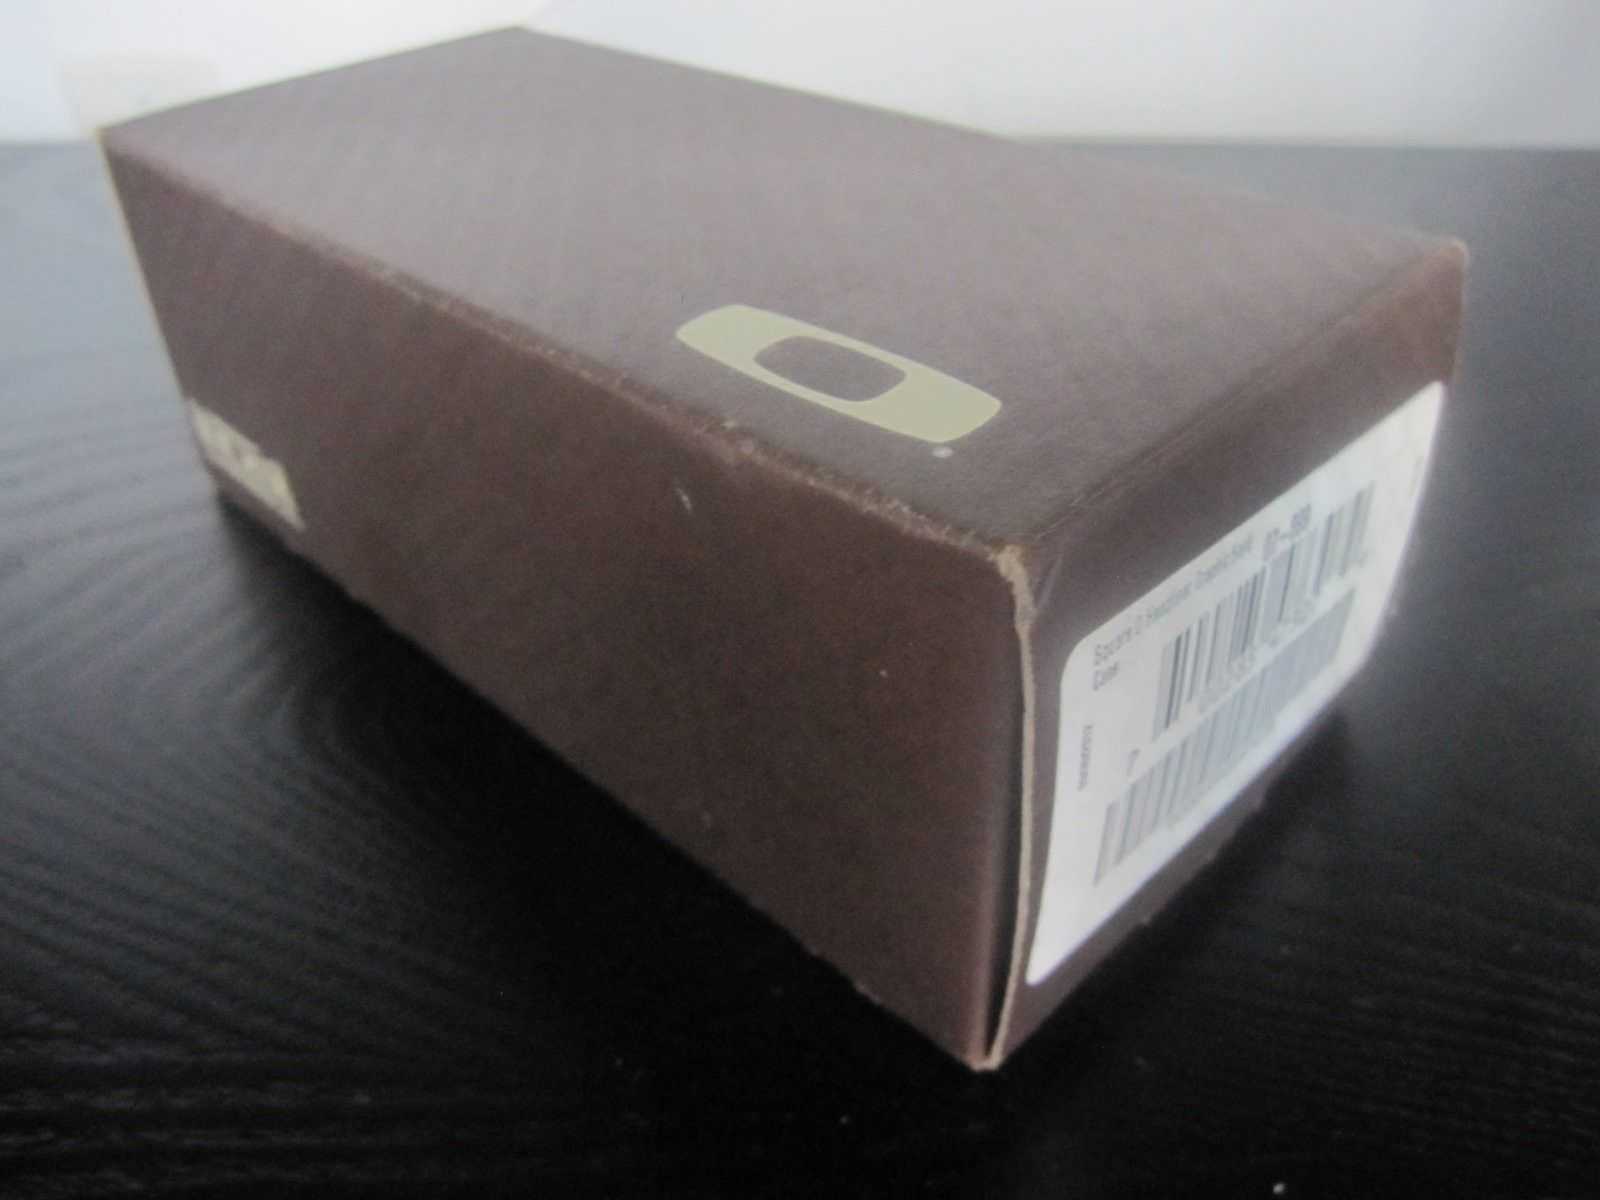 BNIB Square O Headliner Graphic Hard Case - IMG_5165.JPG